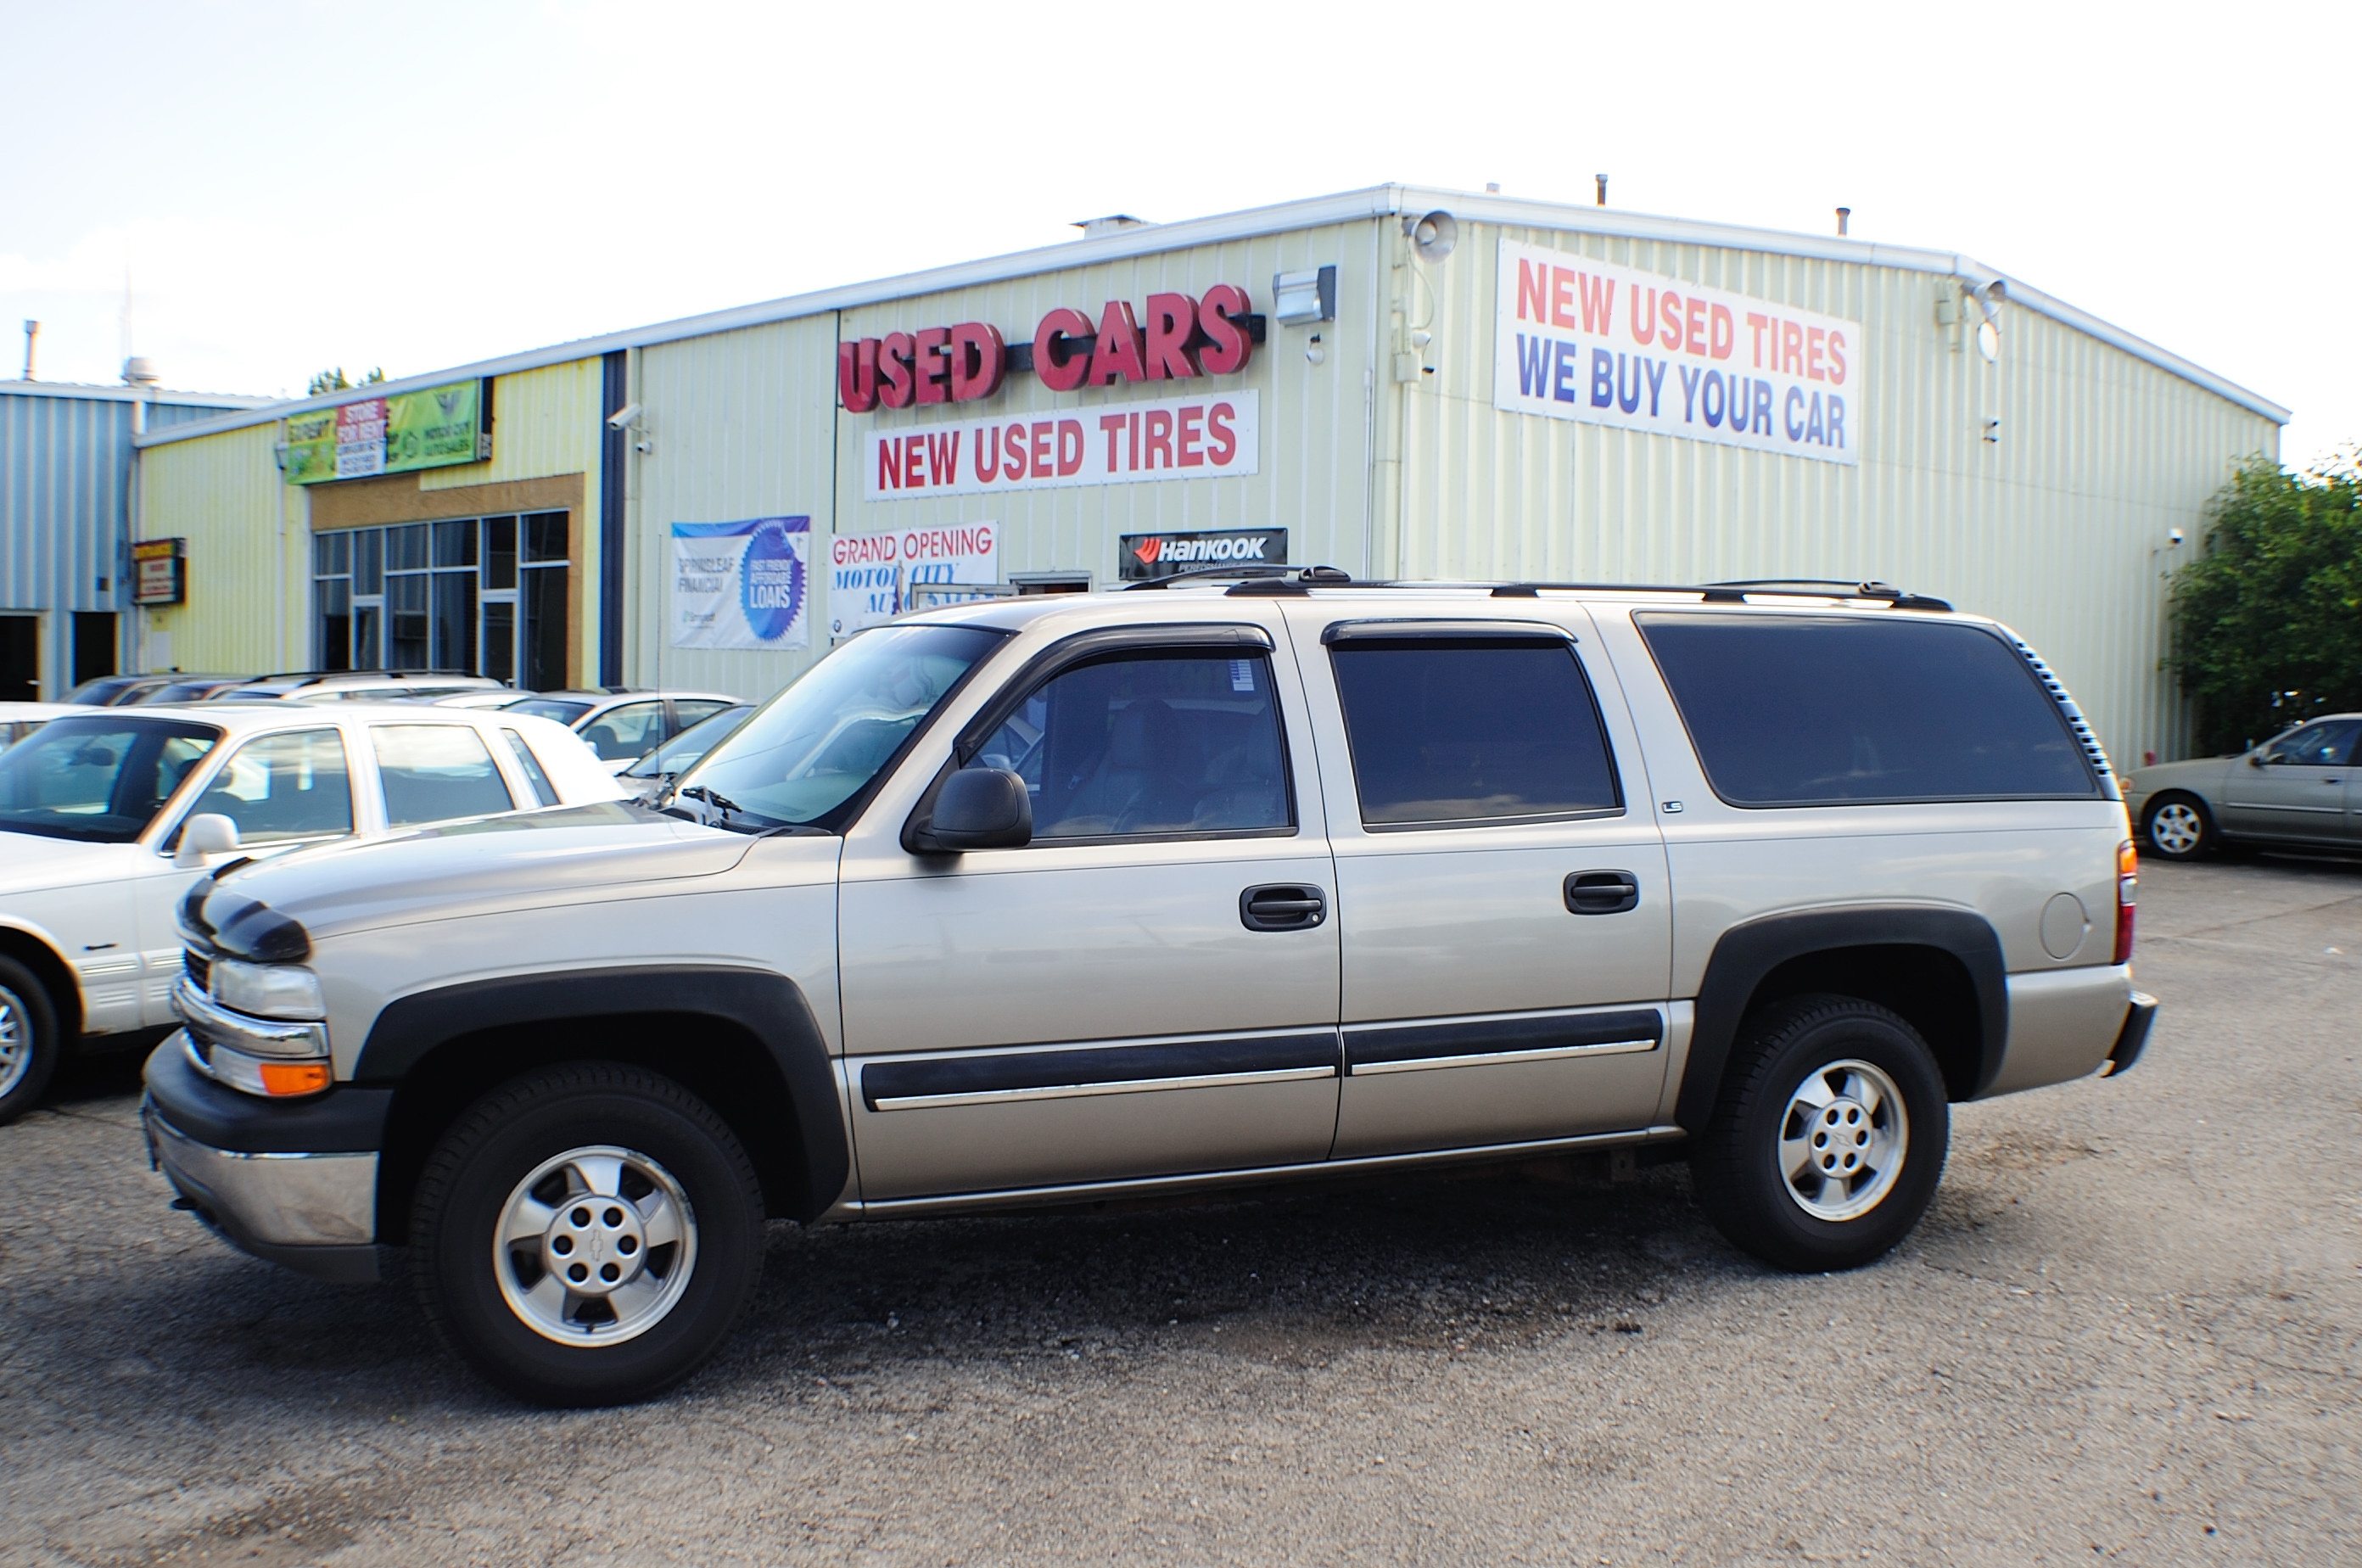 2001 Chevrolet Suburban LS Pewter 4x4 Tow SUV Used Car Sale Antioch Grayslake